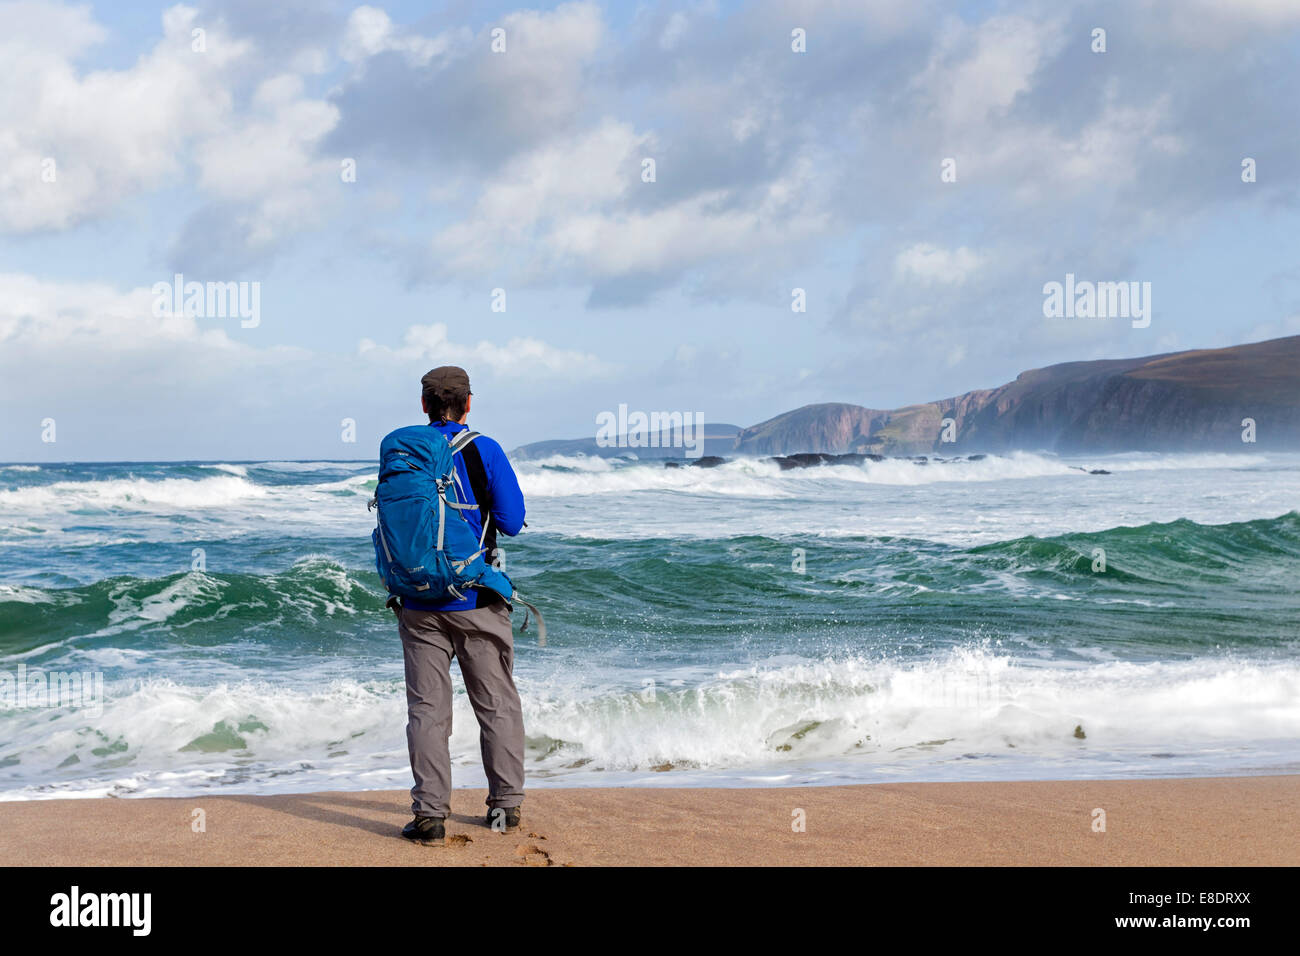 Walker and Stormy Sea, Sandwood Bay North West Scotland UK - Stock Image